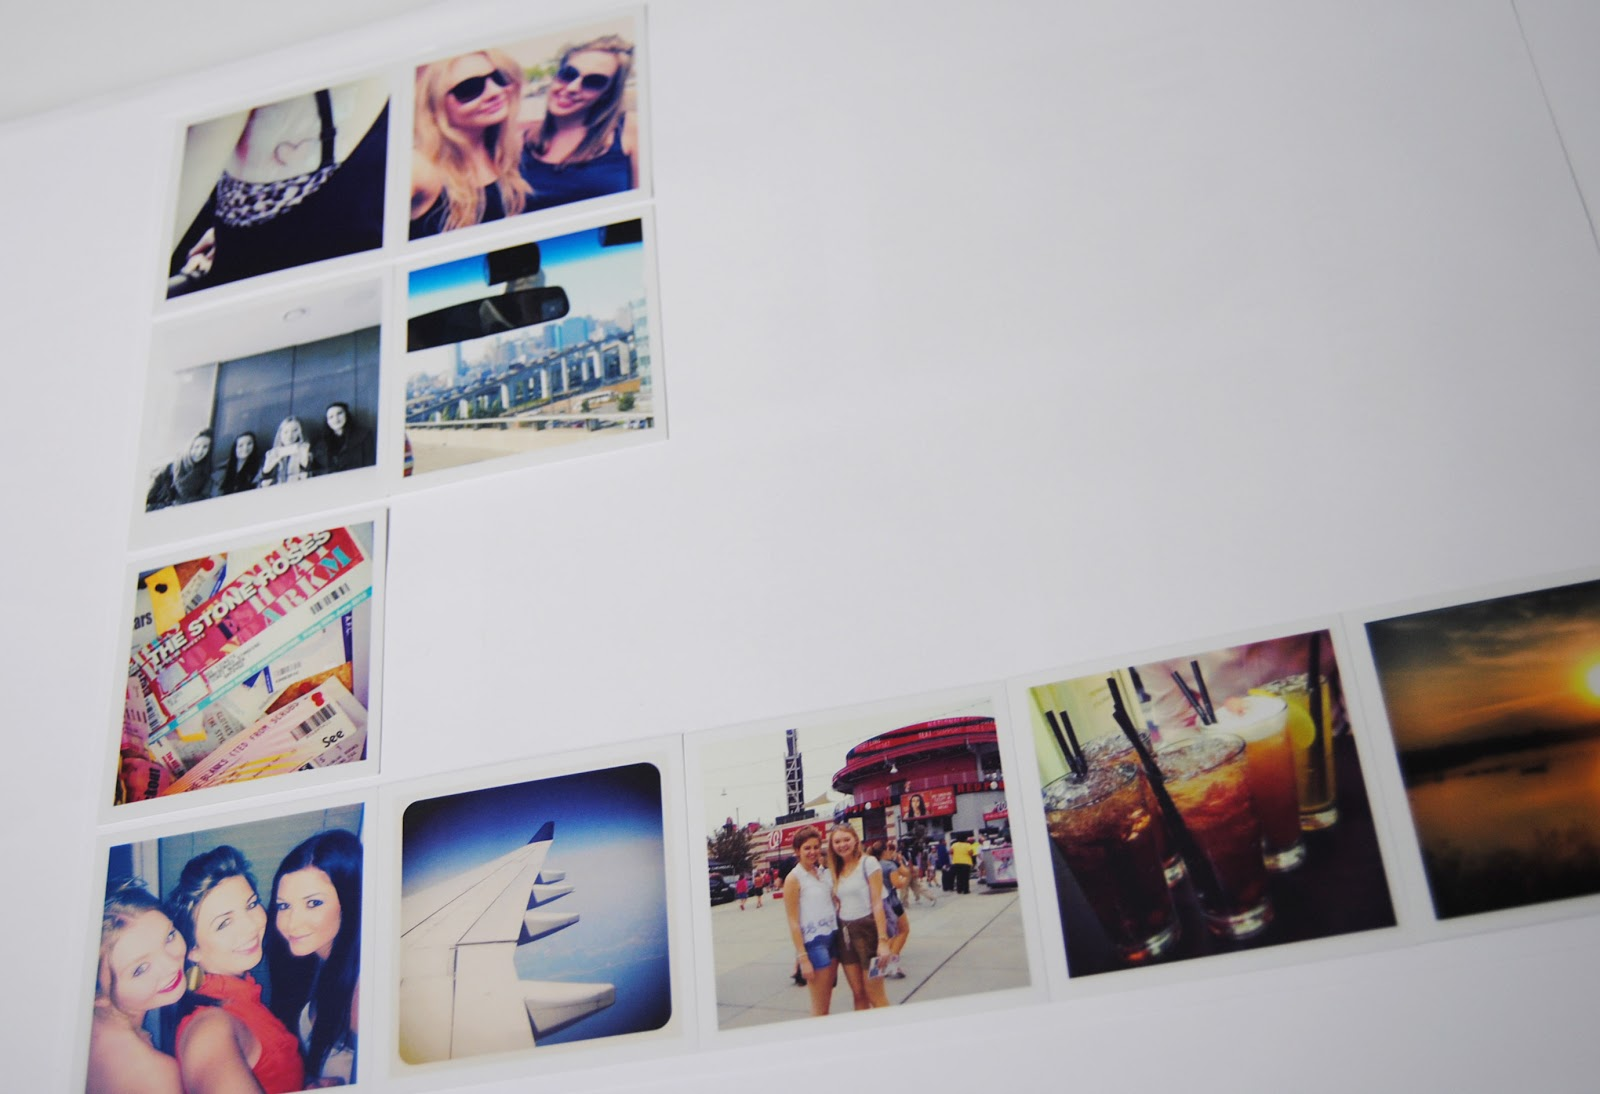 Wall Photo Collage Ideas Without Frames To Fit Into The